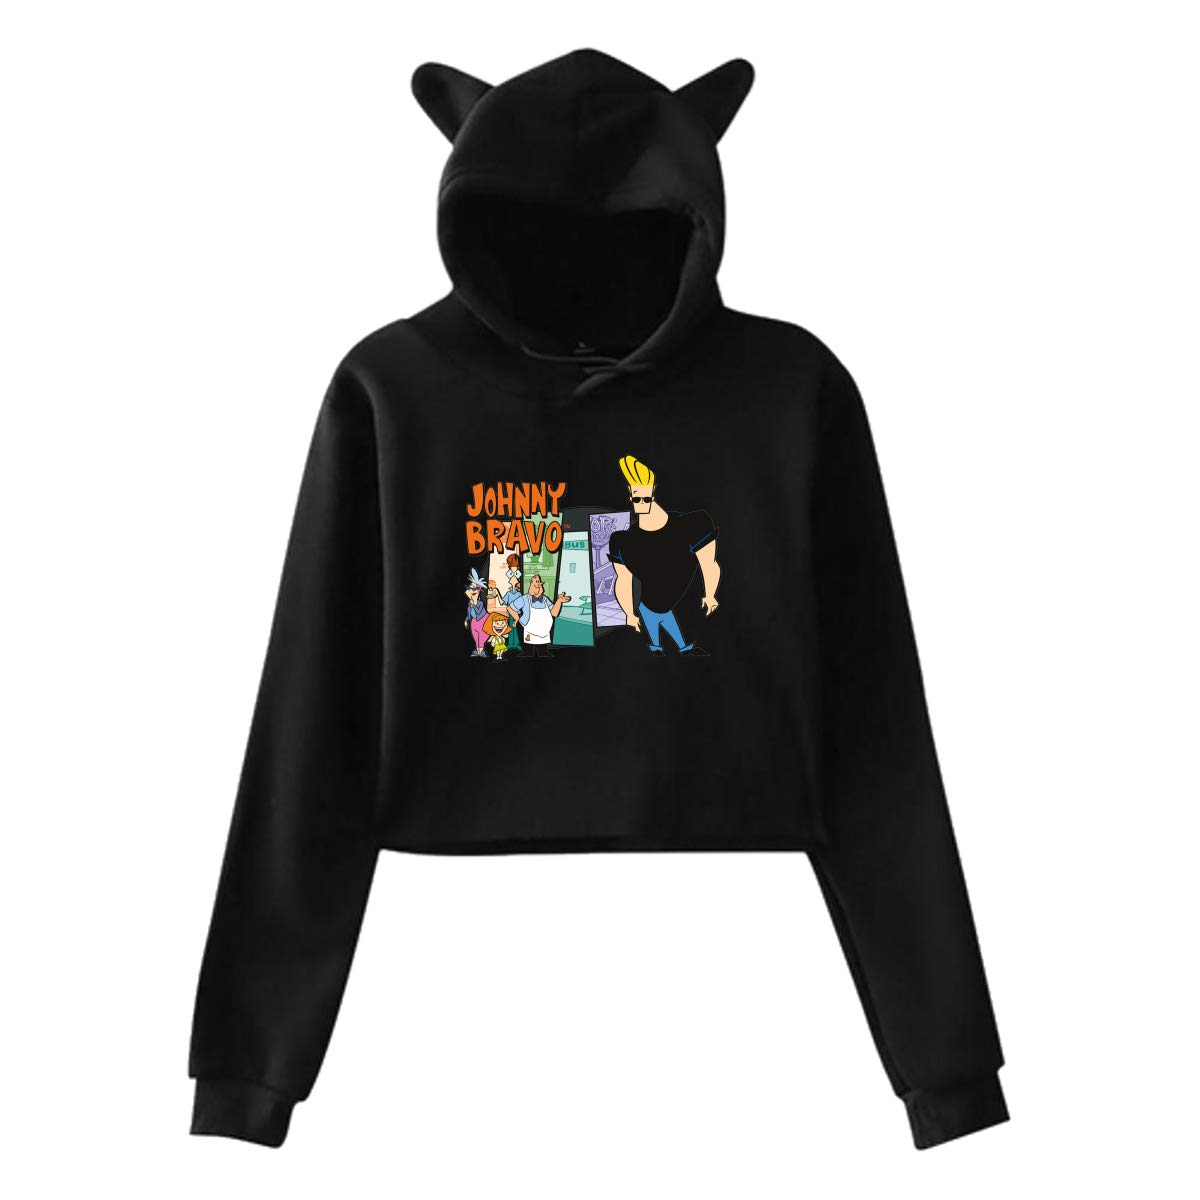 Womens Cat Ear Hoodie Sweater Jonny Handsome and Clumsy Bravo Lumbar Sweatshirt Hooded Black